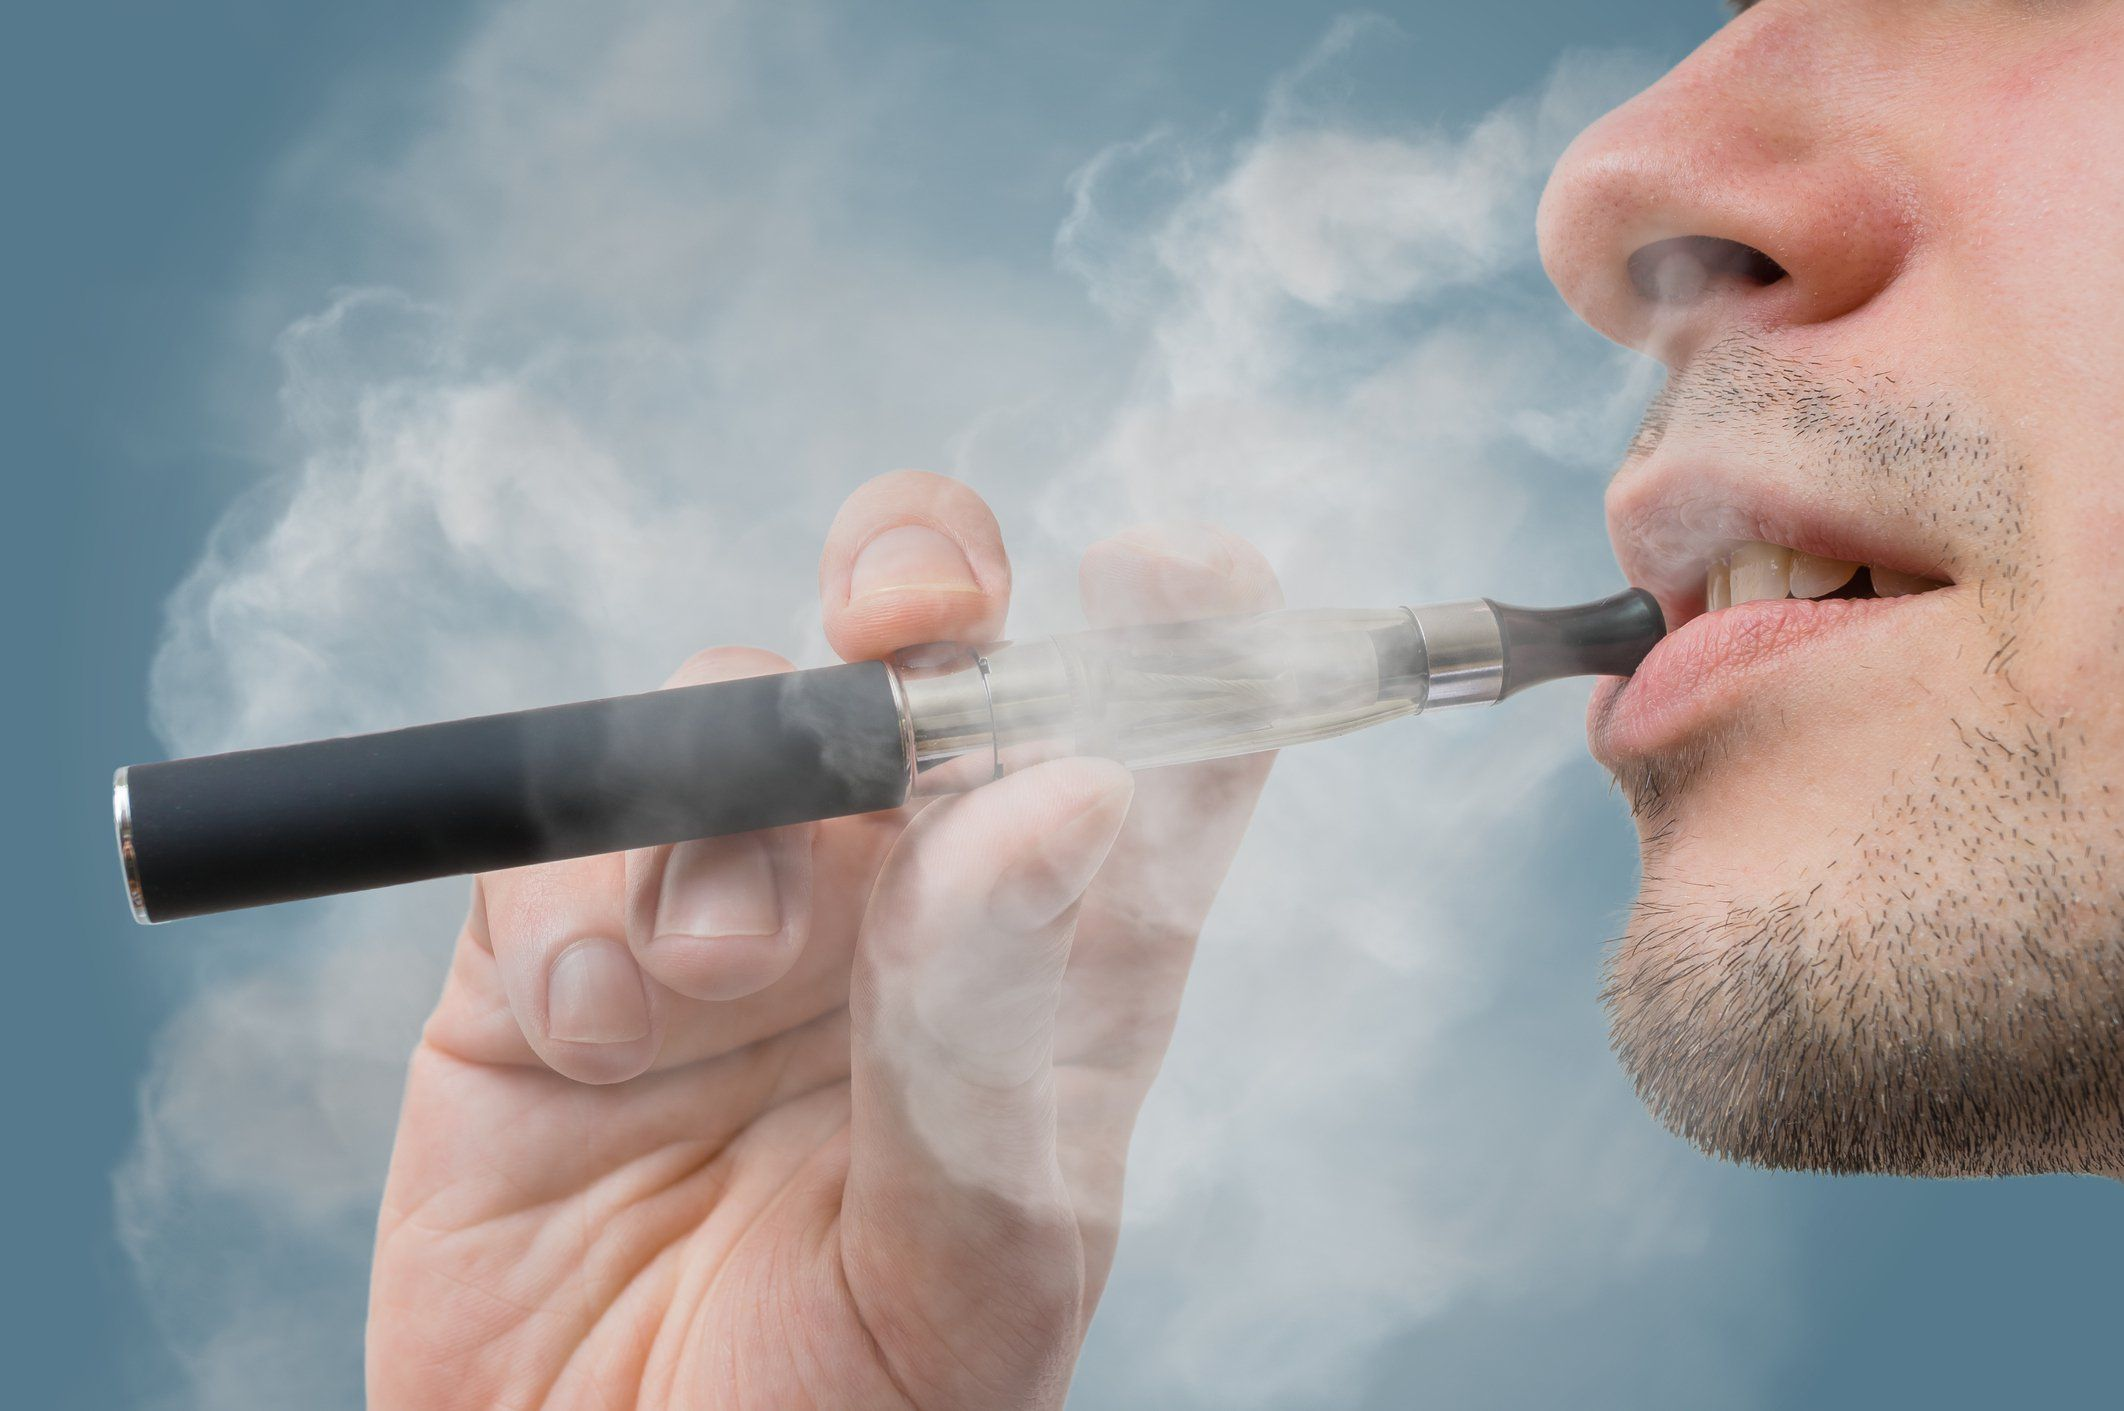 Managing the Vaping Trend: Are Drugs Being Used in Plain Sight on Your Campus?